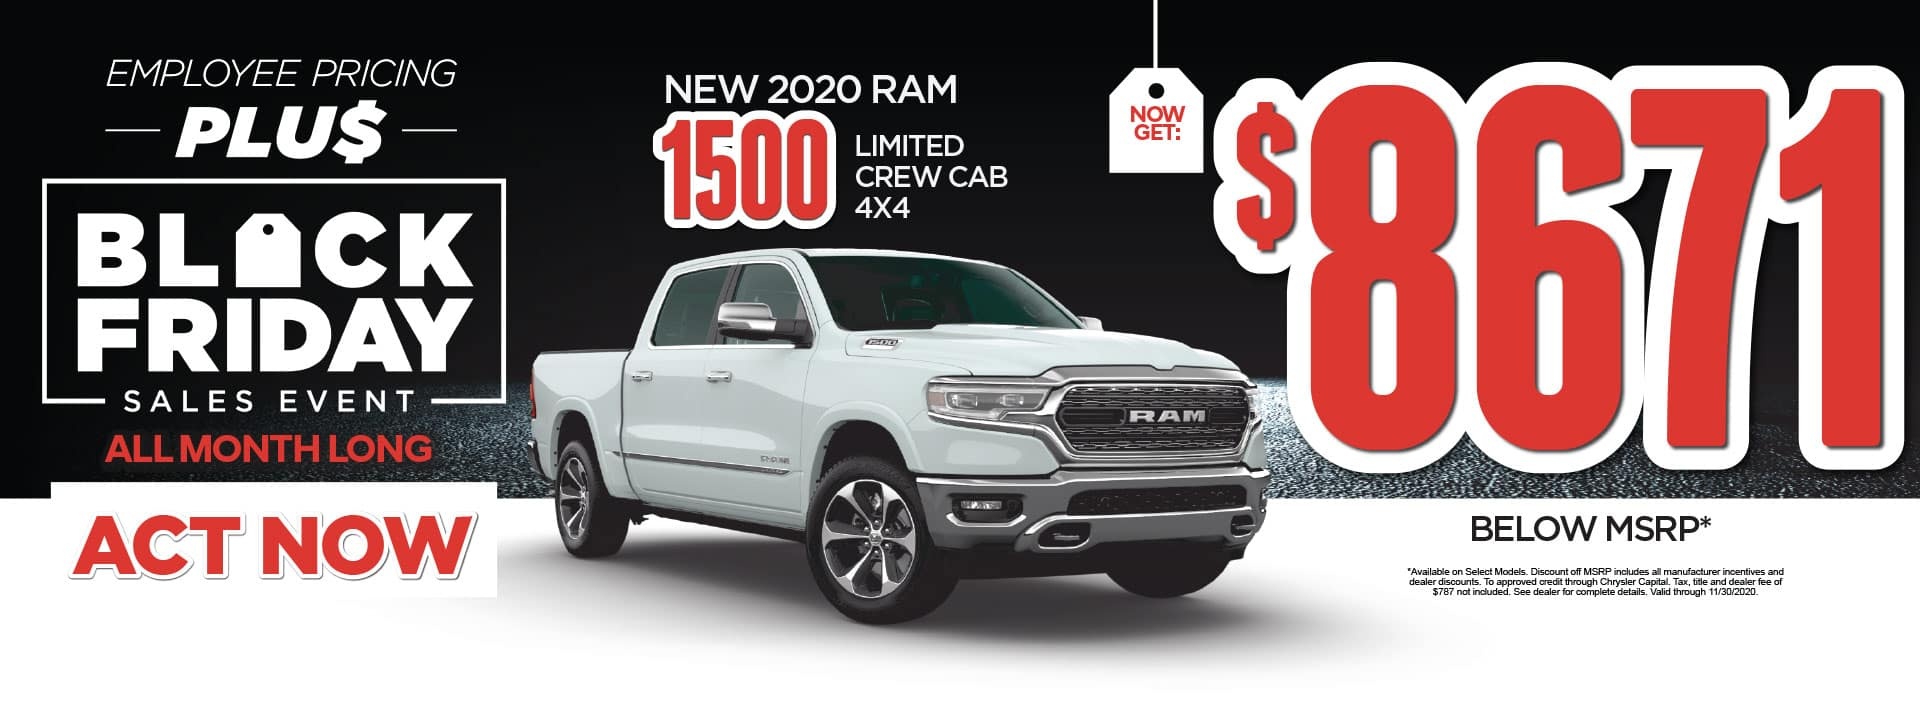 Now get $8671 Below MSRP on New 2020 Ram 1500 Limited Crew Cab* Act Now